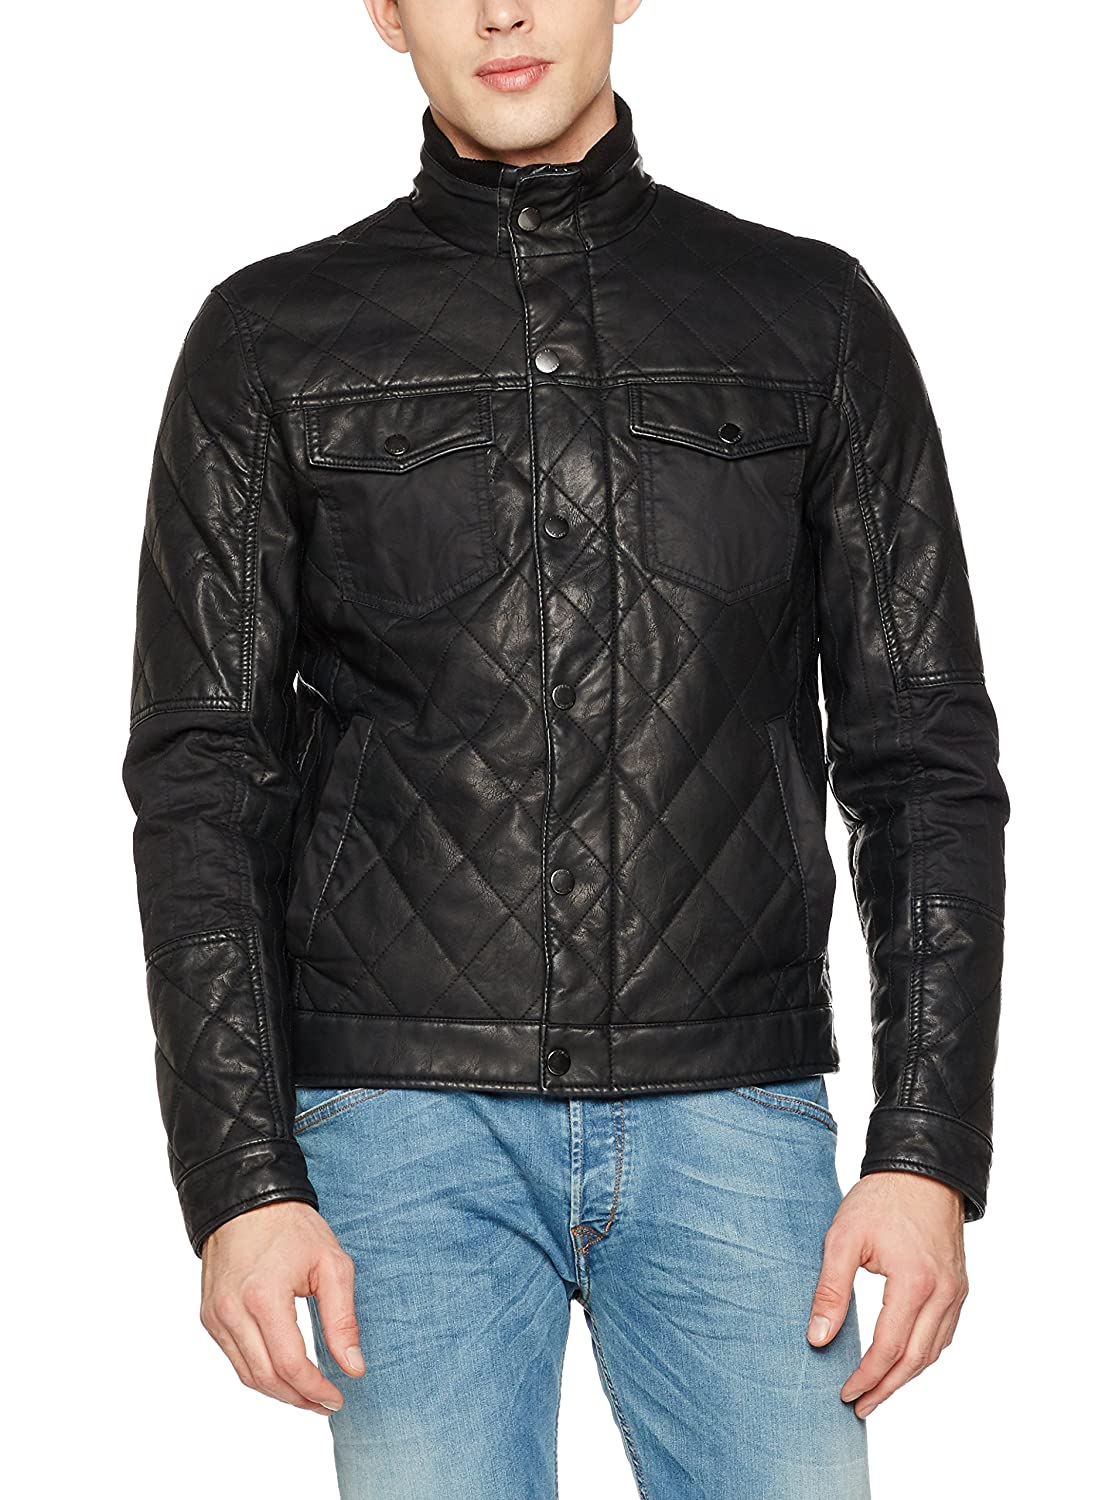 Guess Chaqueta Diamond Quilted PU: Amazon.es: Ropa y accesorios